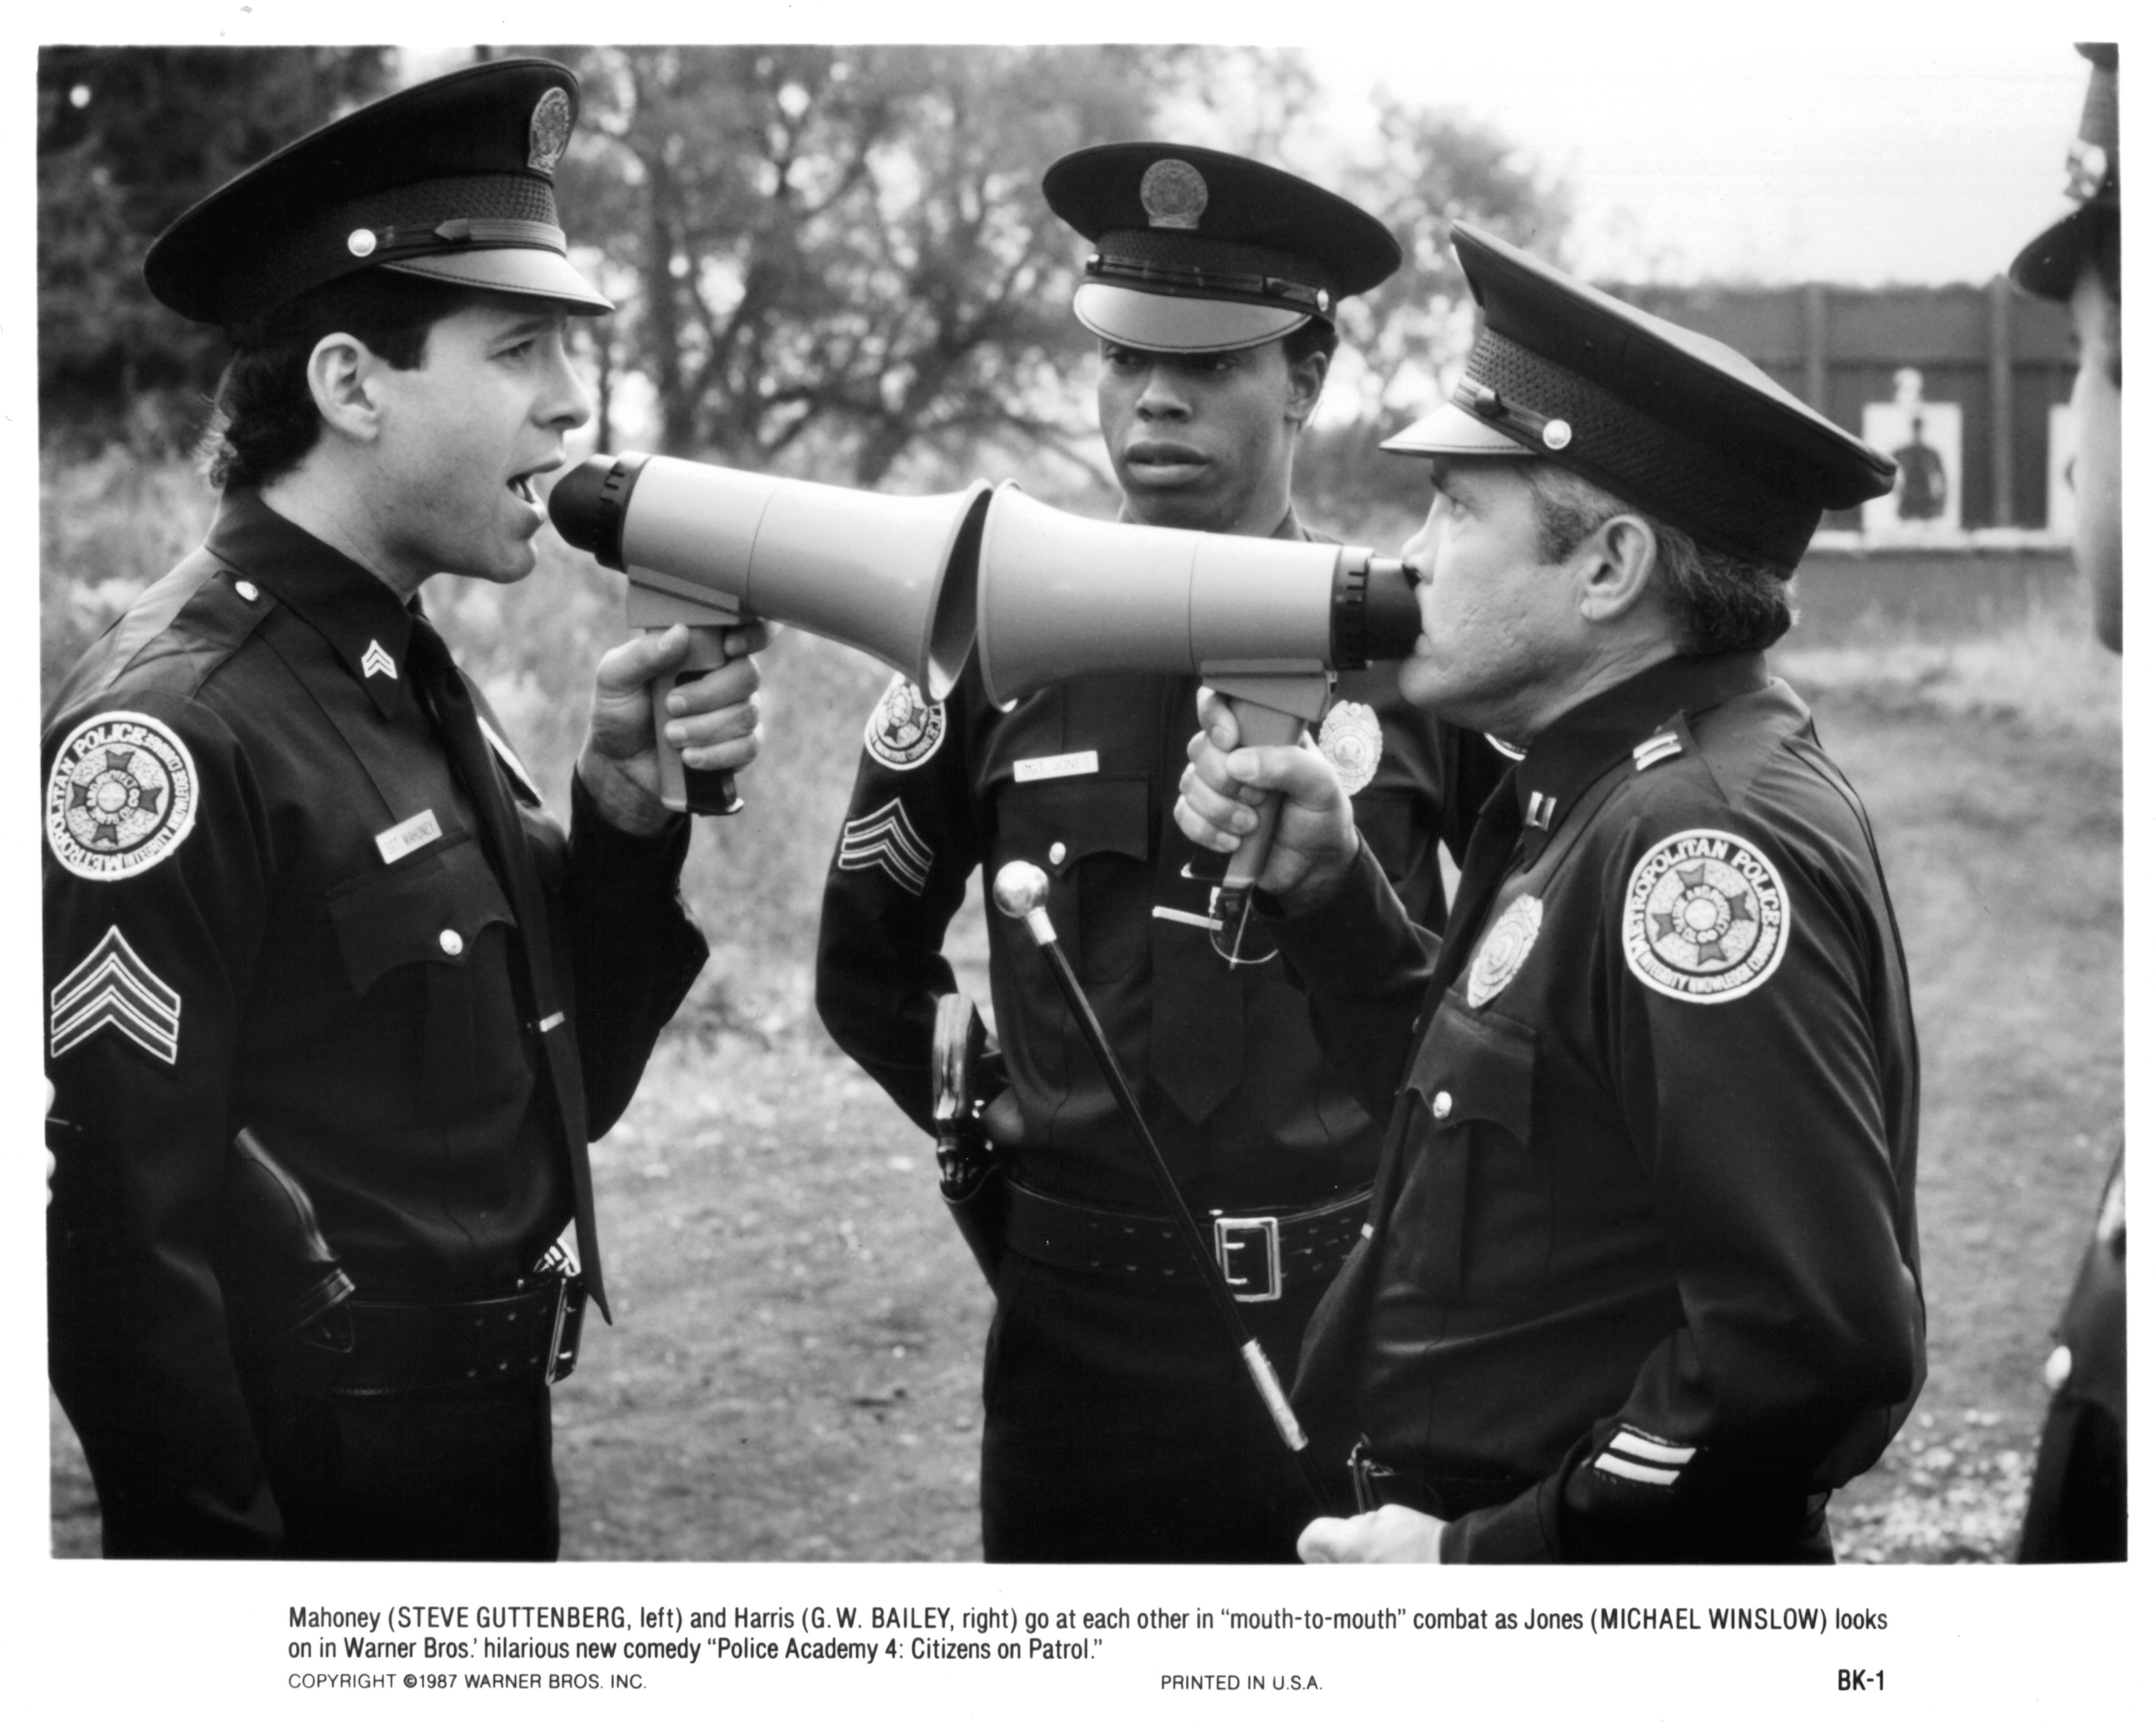 """Actor Michael Winslow with Steve Guttenberg and G.W. Bailey on the set of the movie """"Police Academy 4: Citizens on Patrol"""" in 1987   Photo: Getty Images"""